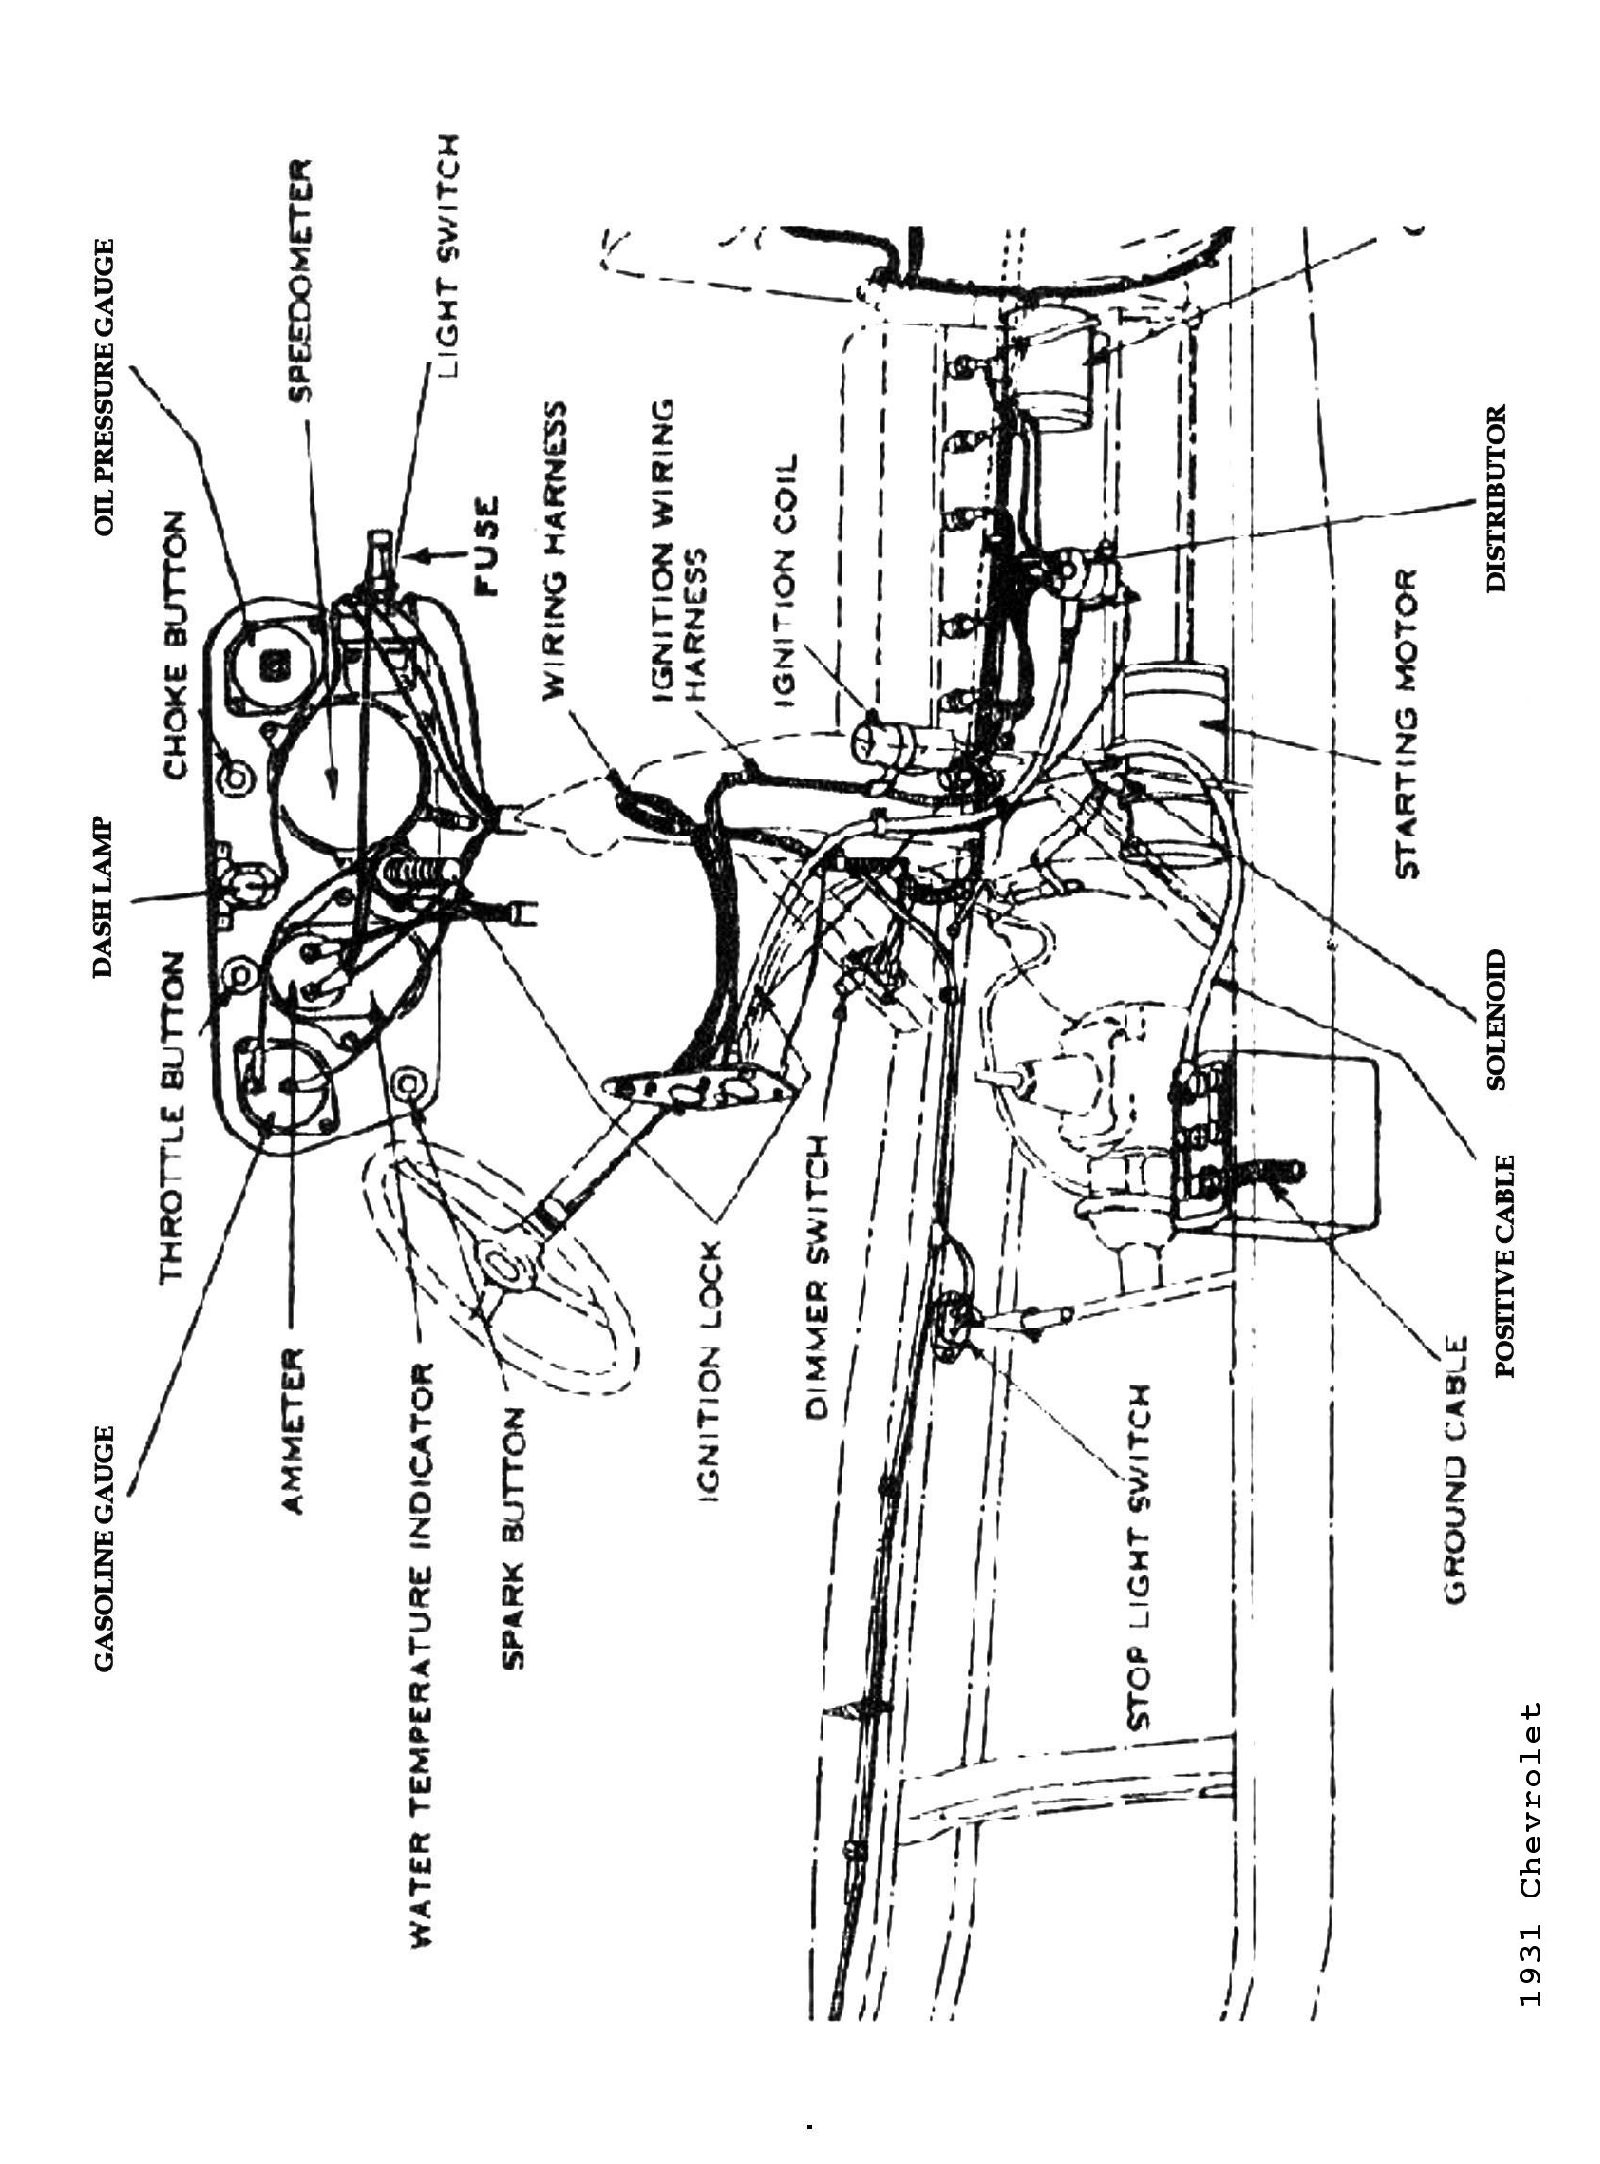 [WRG-2199] 1930 Chevy Wiring Diagrams